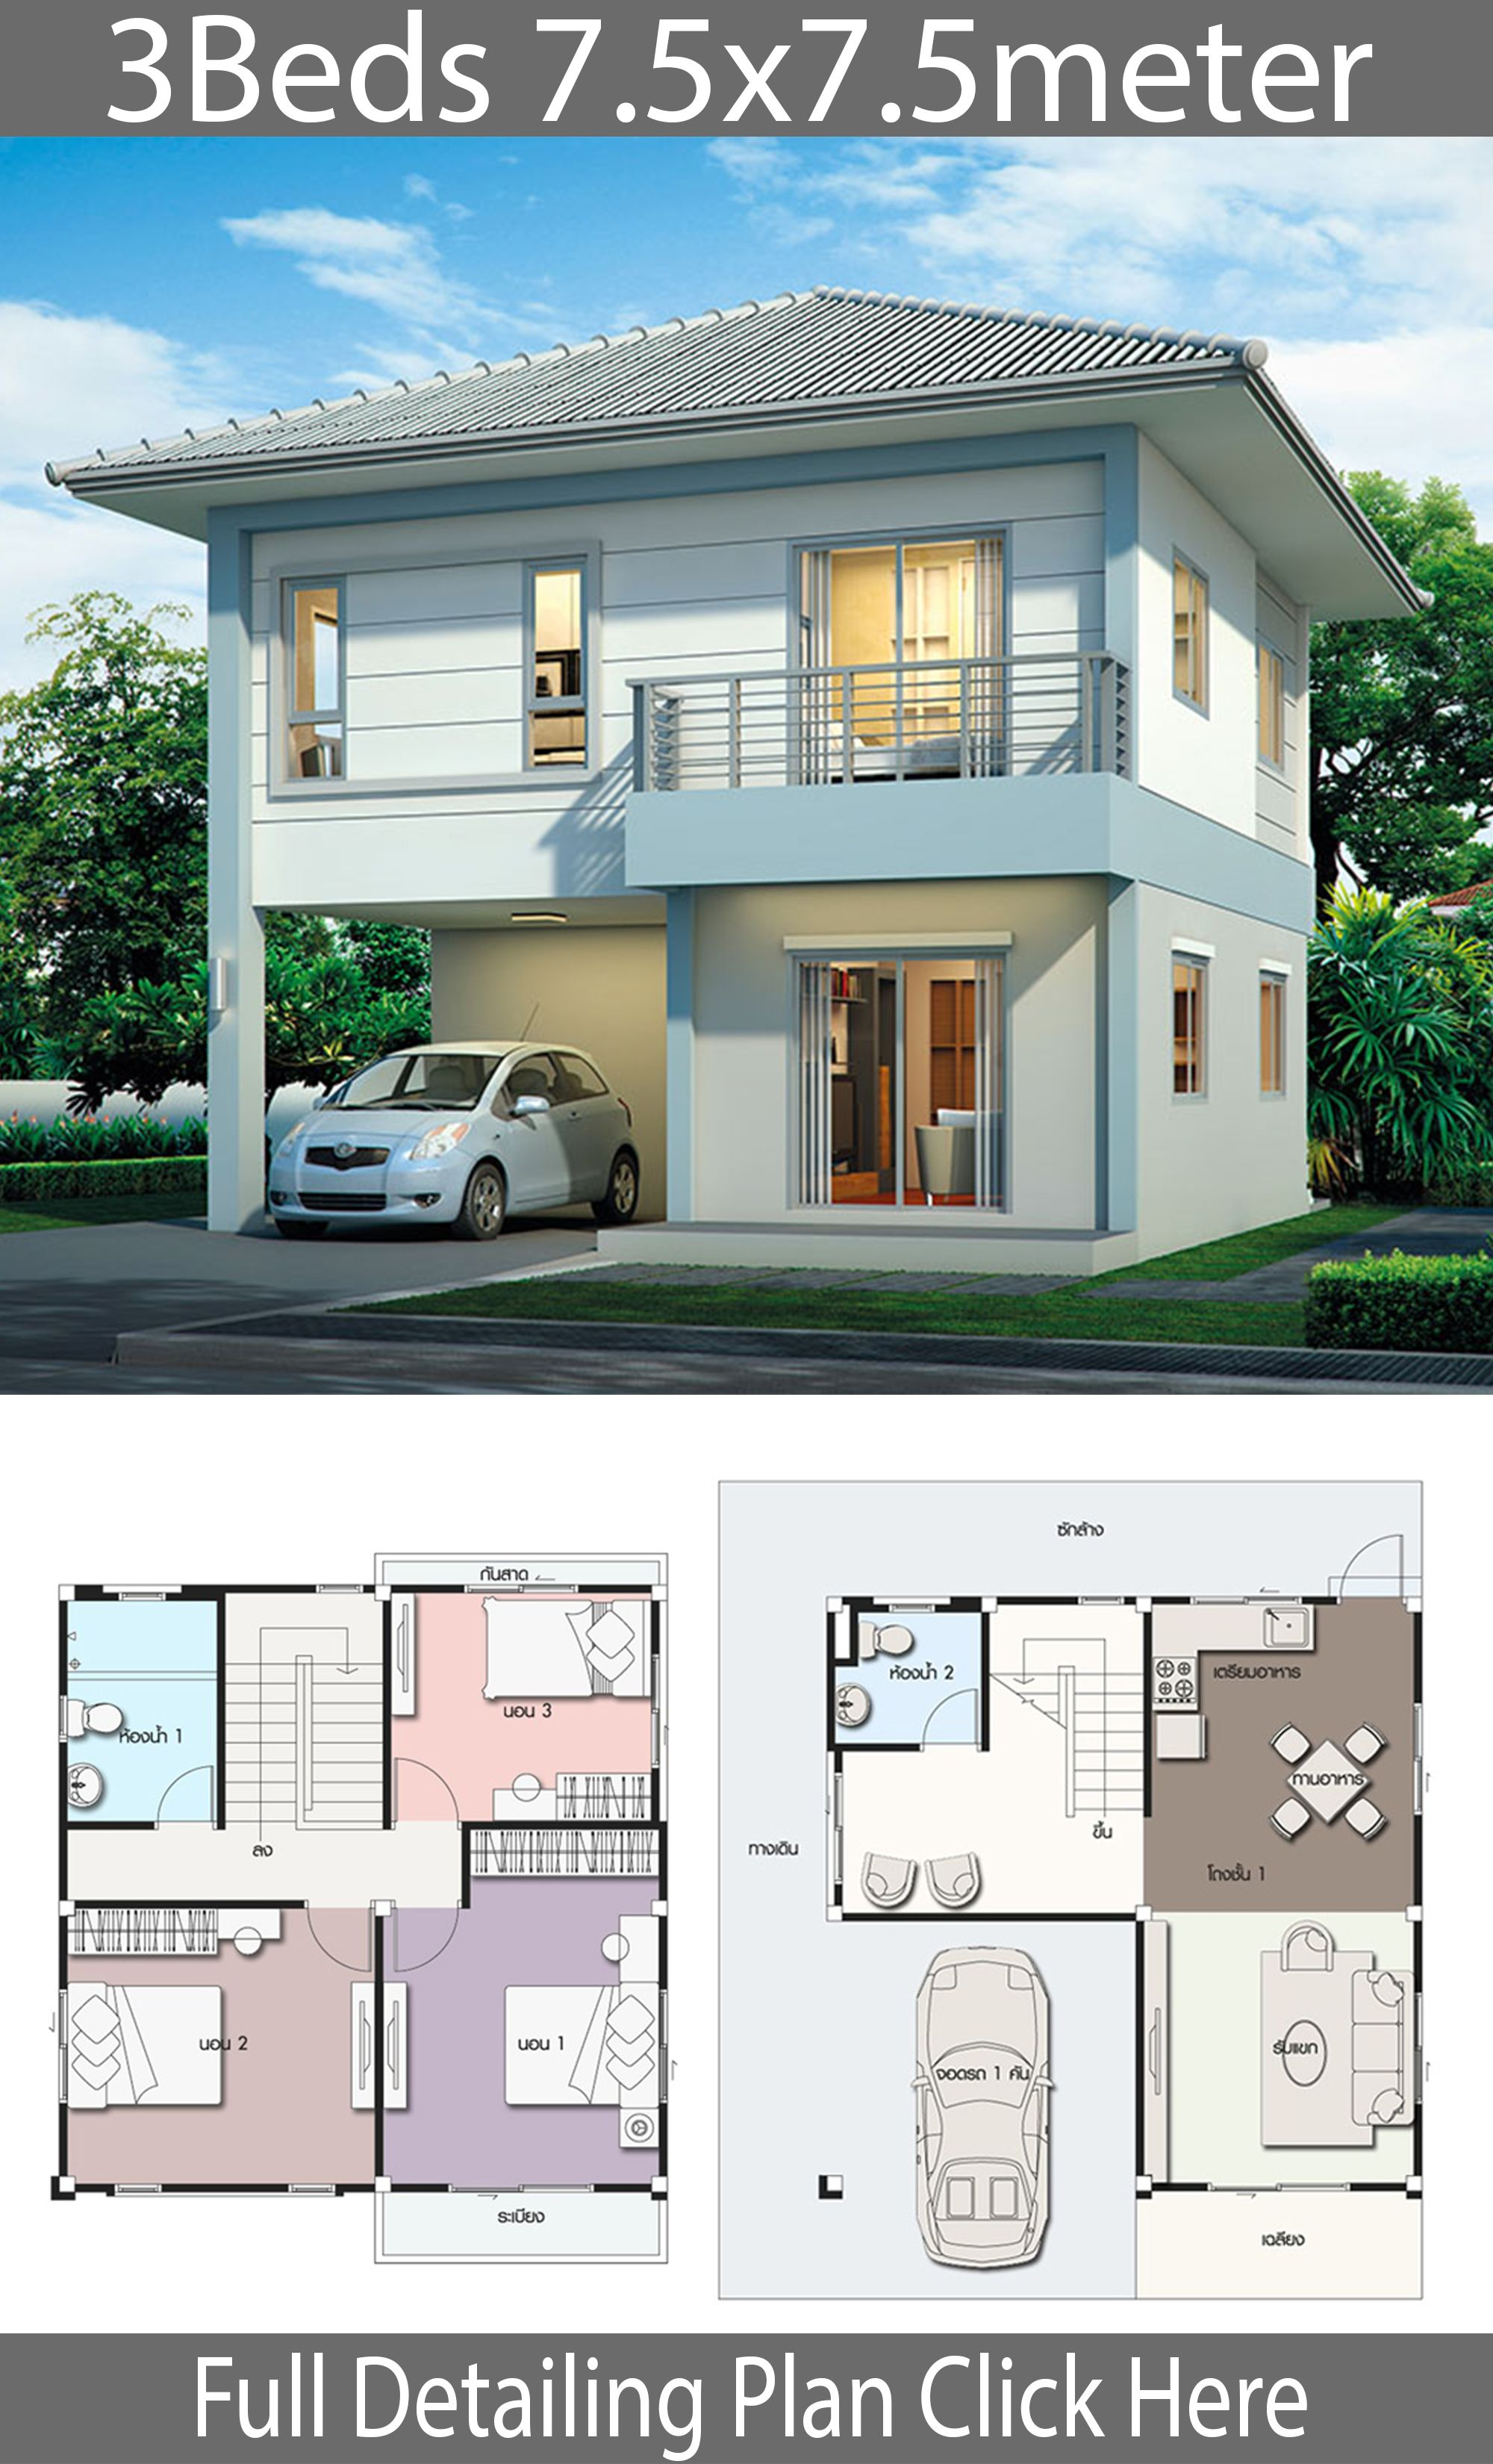 Modern House Design Plan 7 5x7 5m With 3beds House Idea House Construction Plan House Plan Gallery Modern House Plans